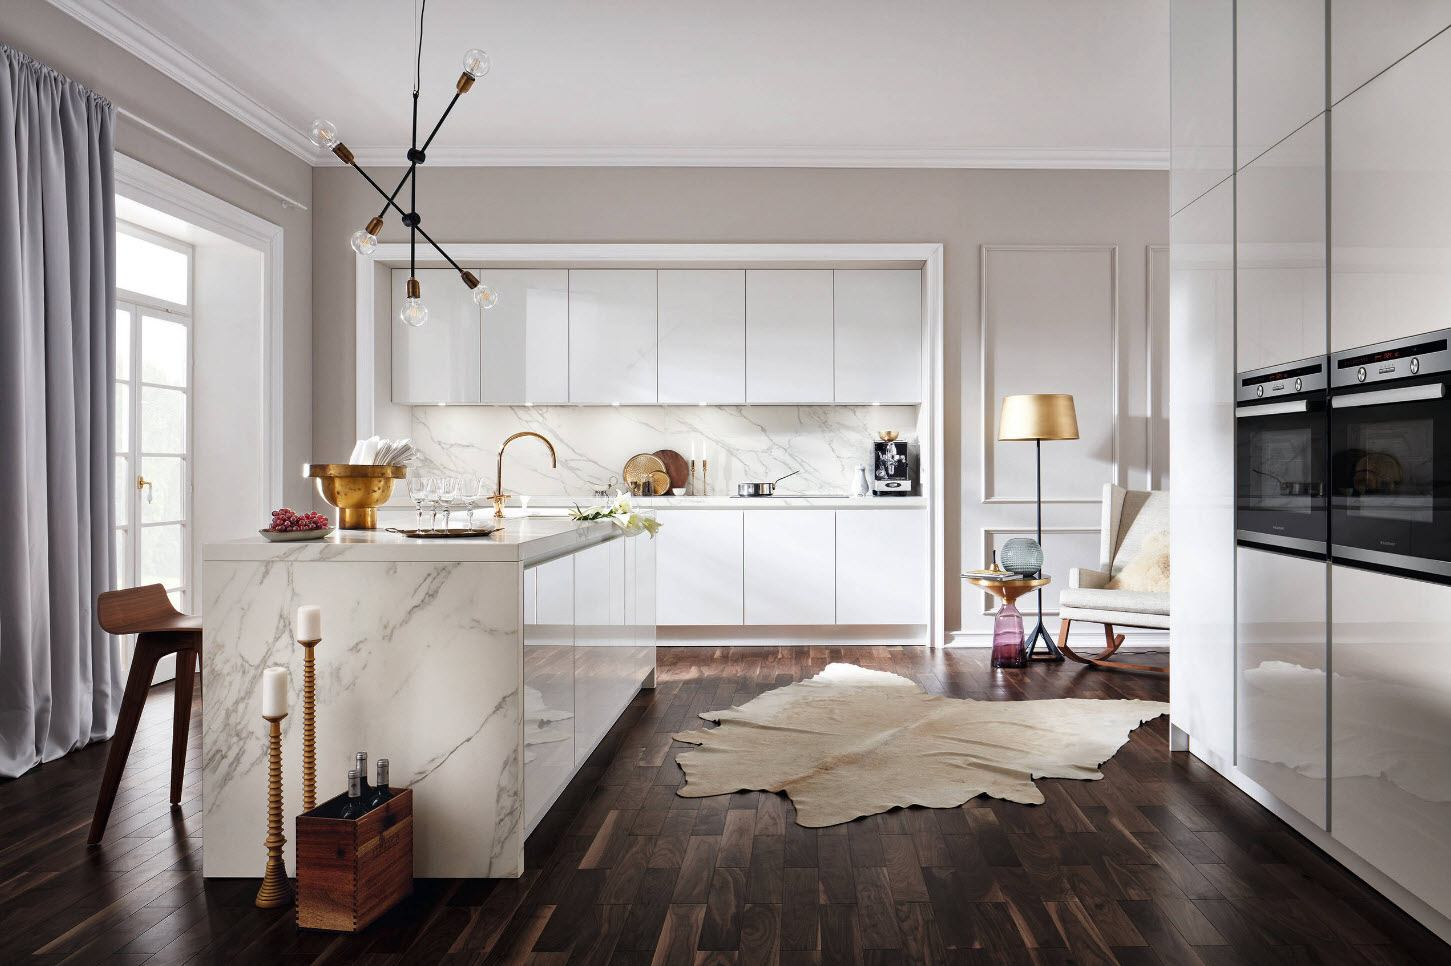 90 Square Feet Kitchen Interior Design Ideas & Examples. Natural dak hard wood floor for combined kitchen in the house